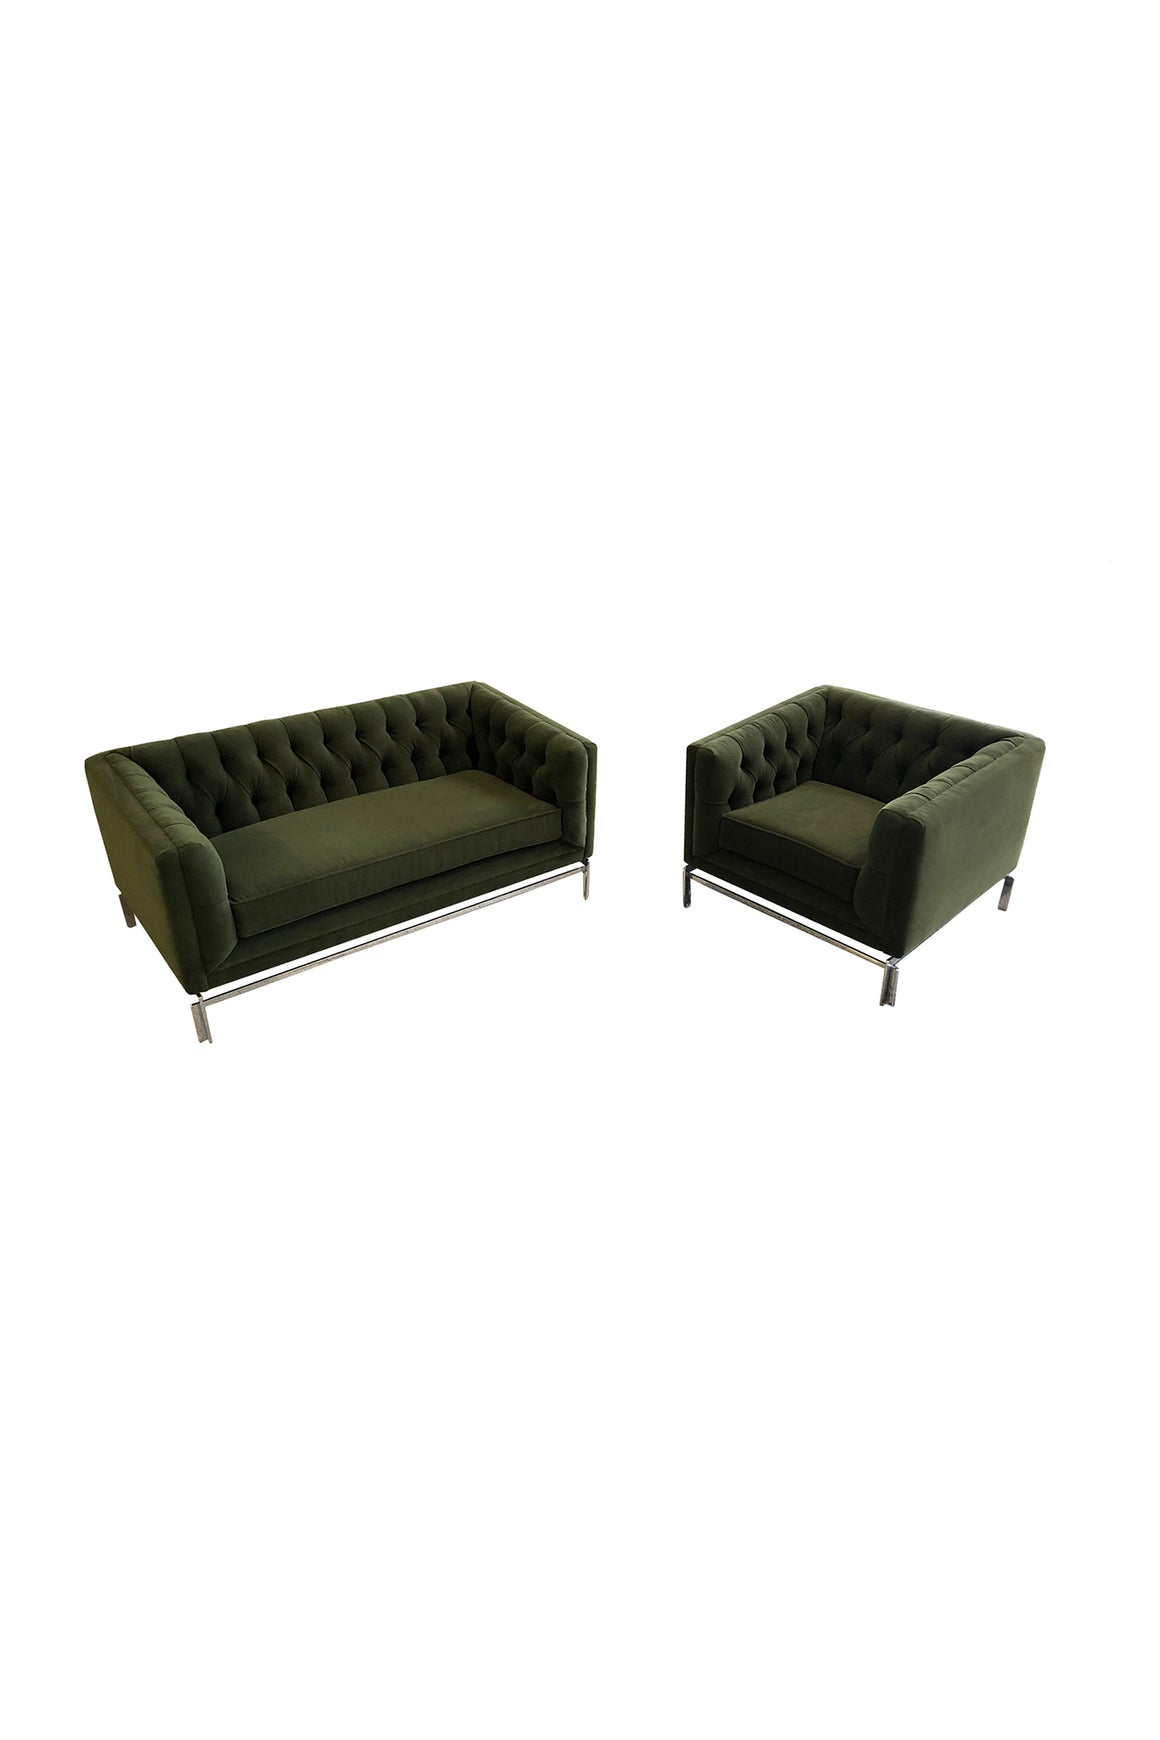 Midcentury Knoll-Style Tufted Settee & Club Chair Set